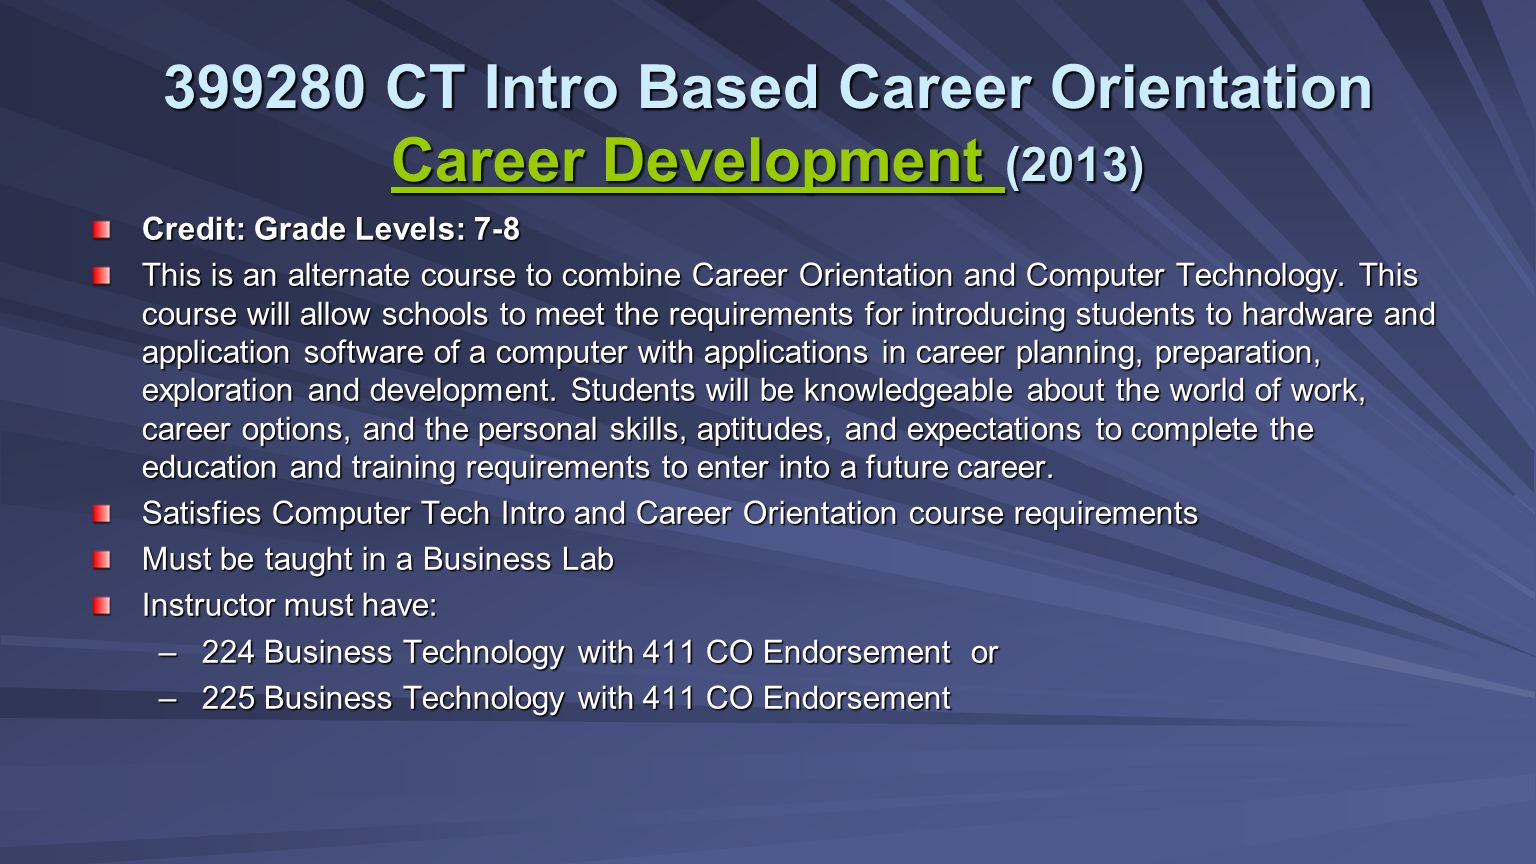 Credit: Grade Levels: 7-8 This is an alternate course to combine Career Orientation and Computer Technology. This course will allow schools to meet th